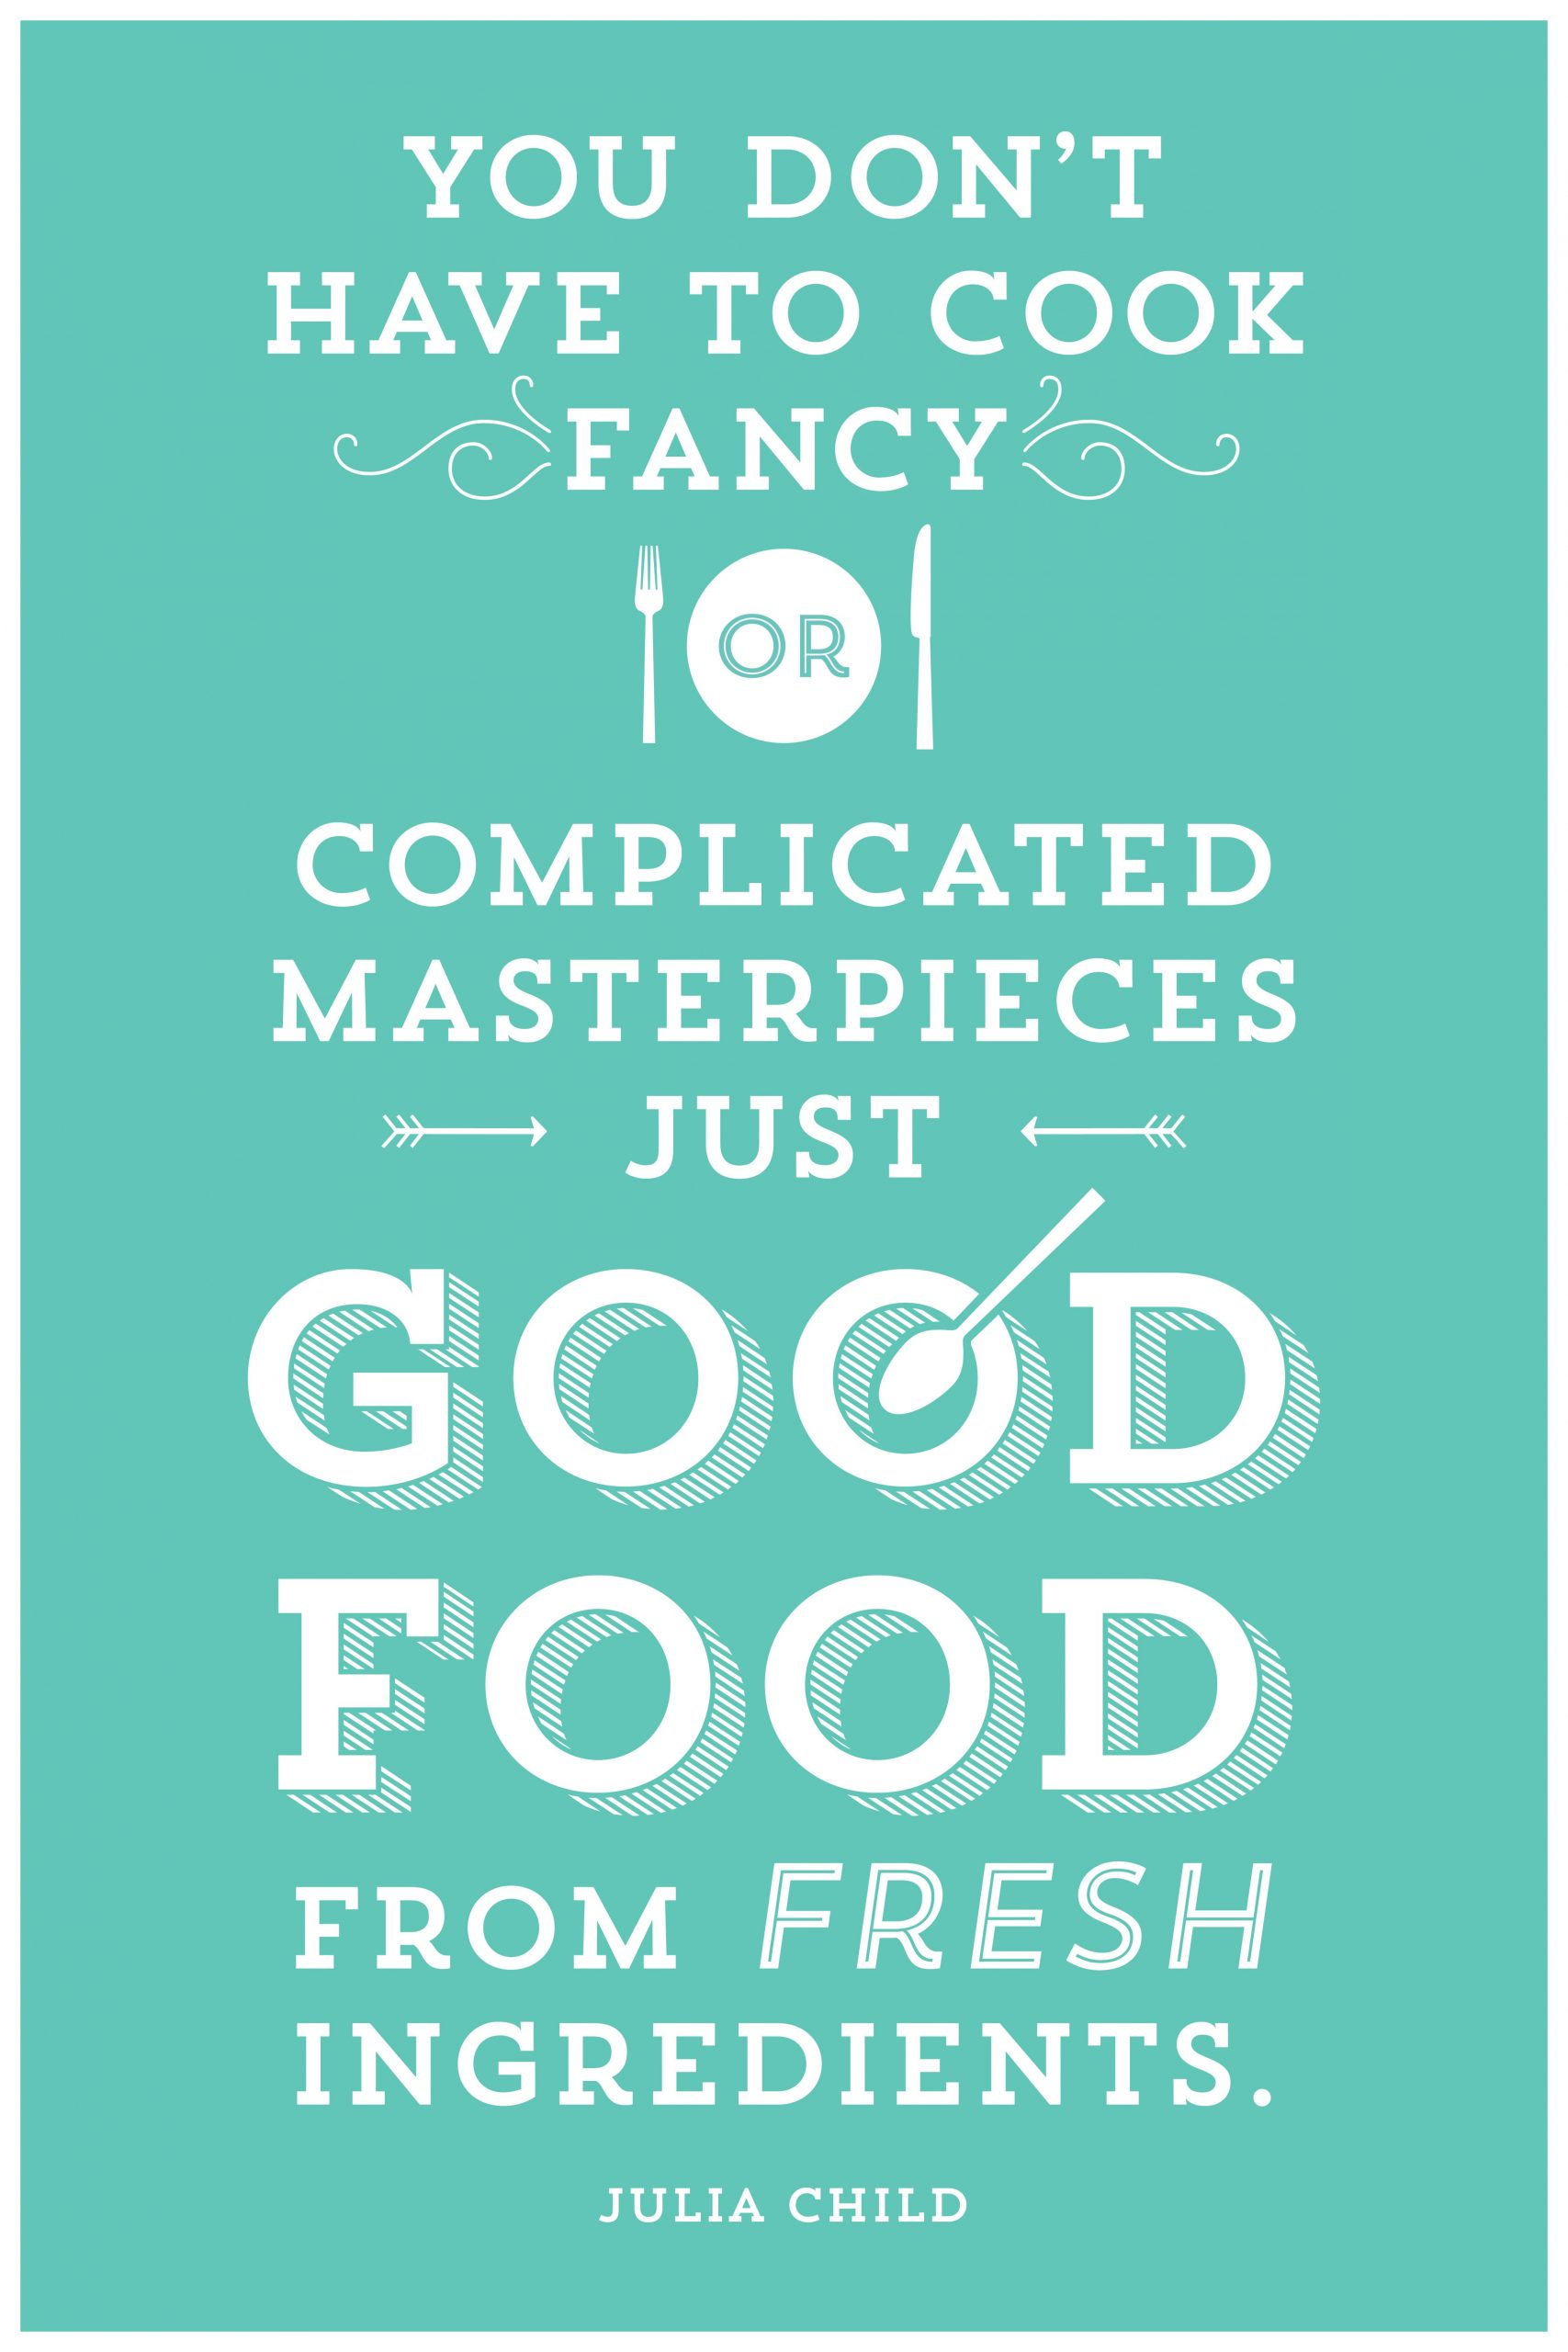 Quotes about Cooking (8 quotes)